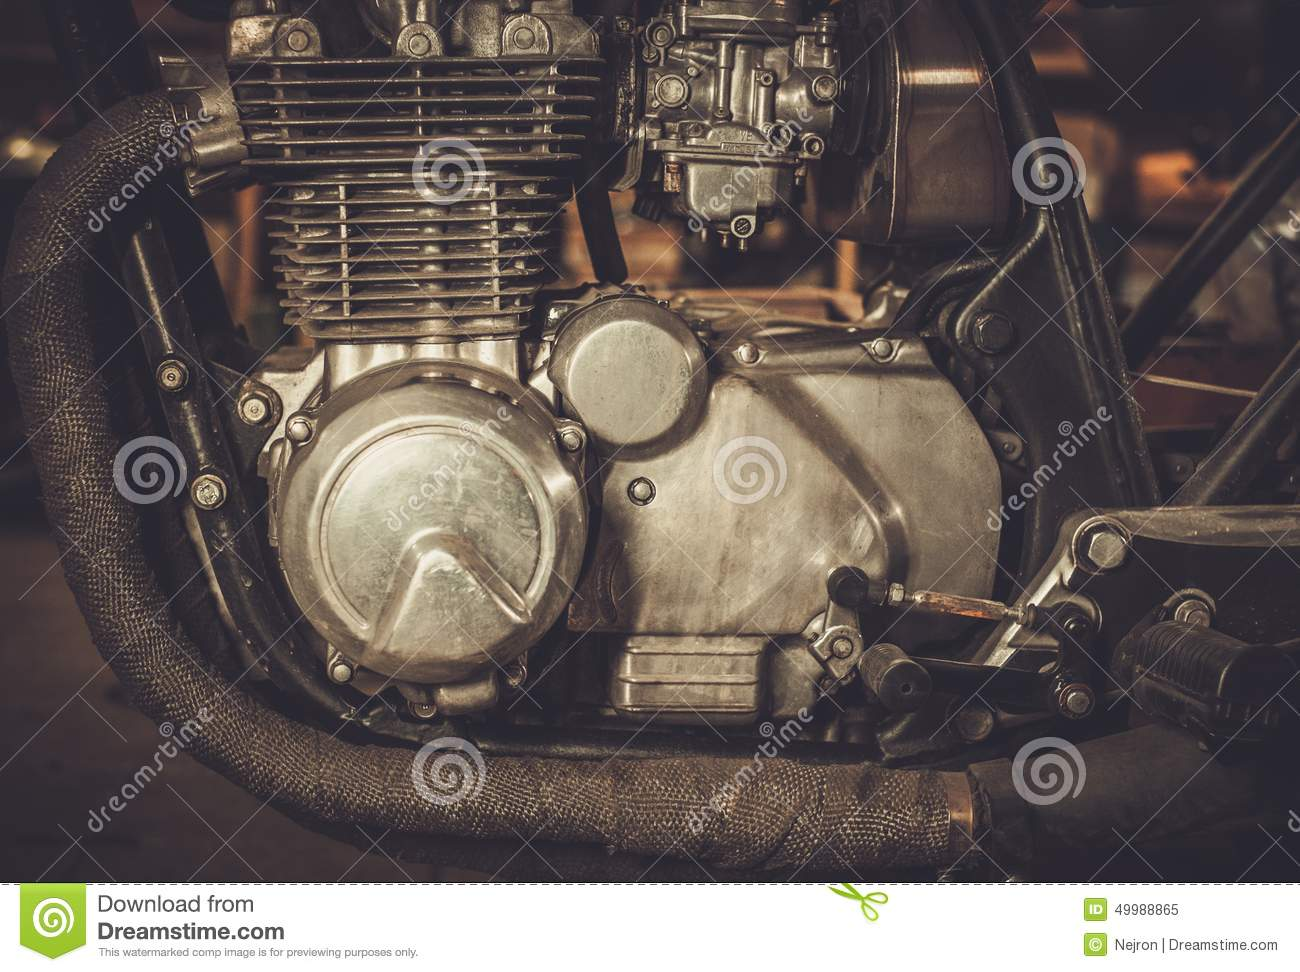 Cafe-racer motorcycle engine